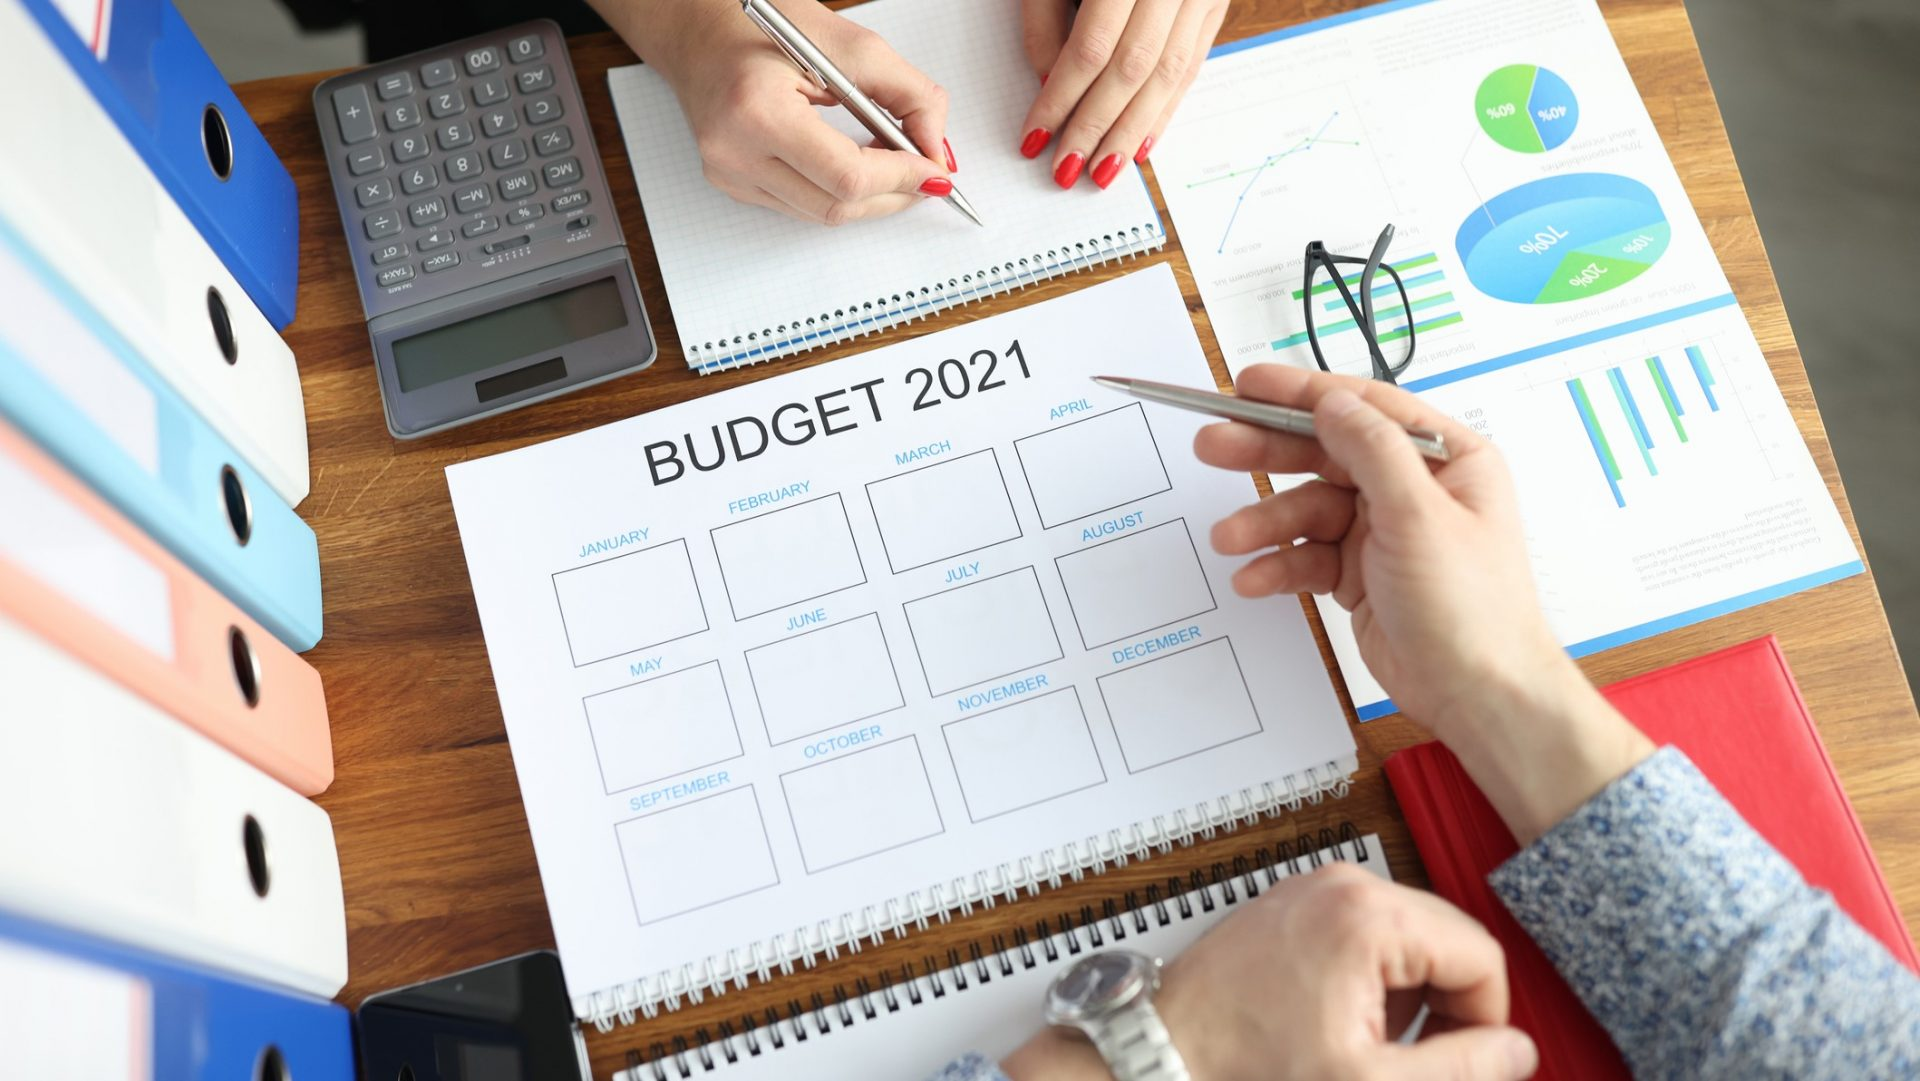 How You Should Adjust Your Budget for 2021